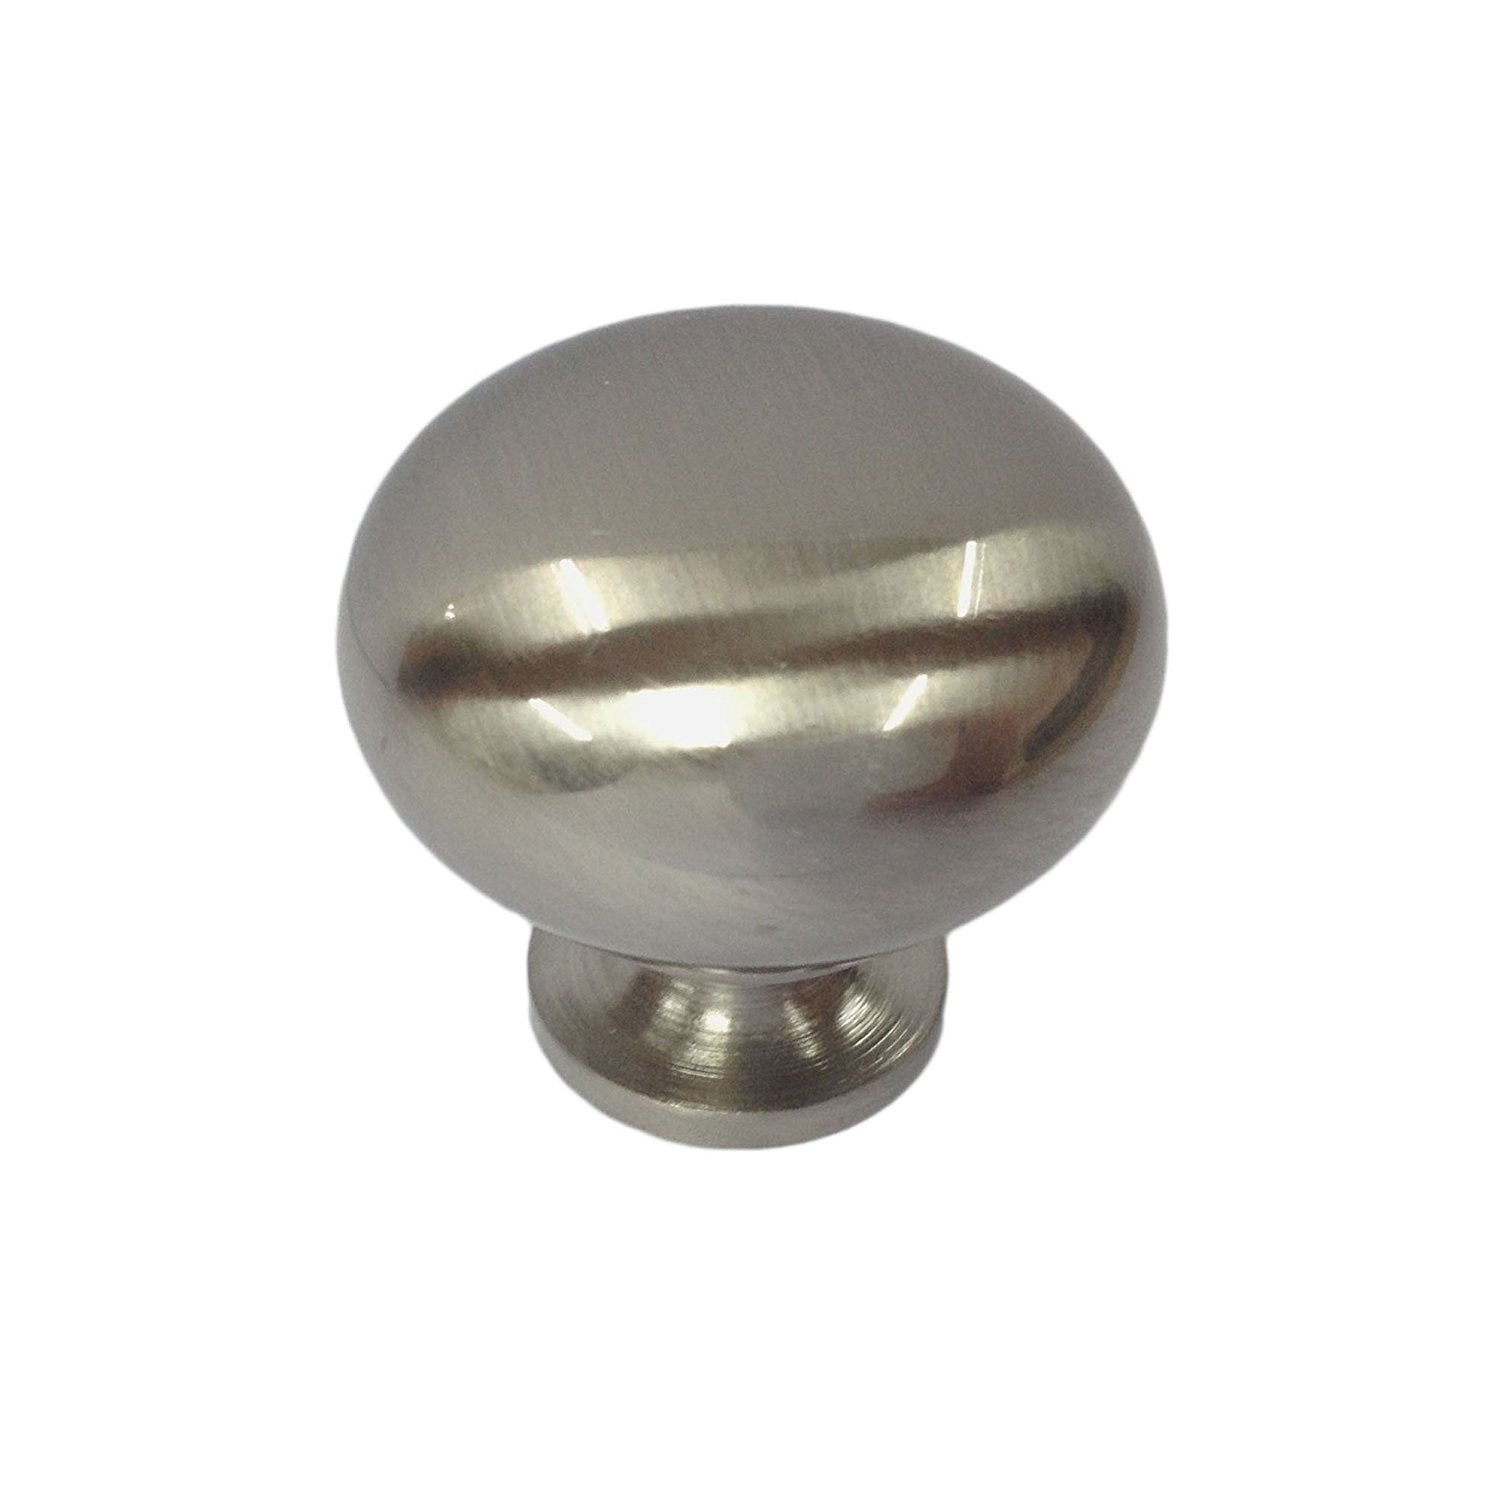 Blyth Round Cabinet Hardware Knob - 3 Finishes